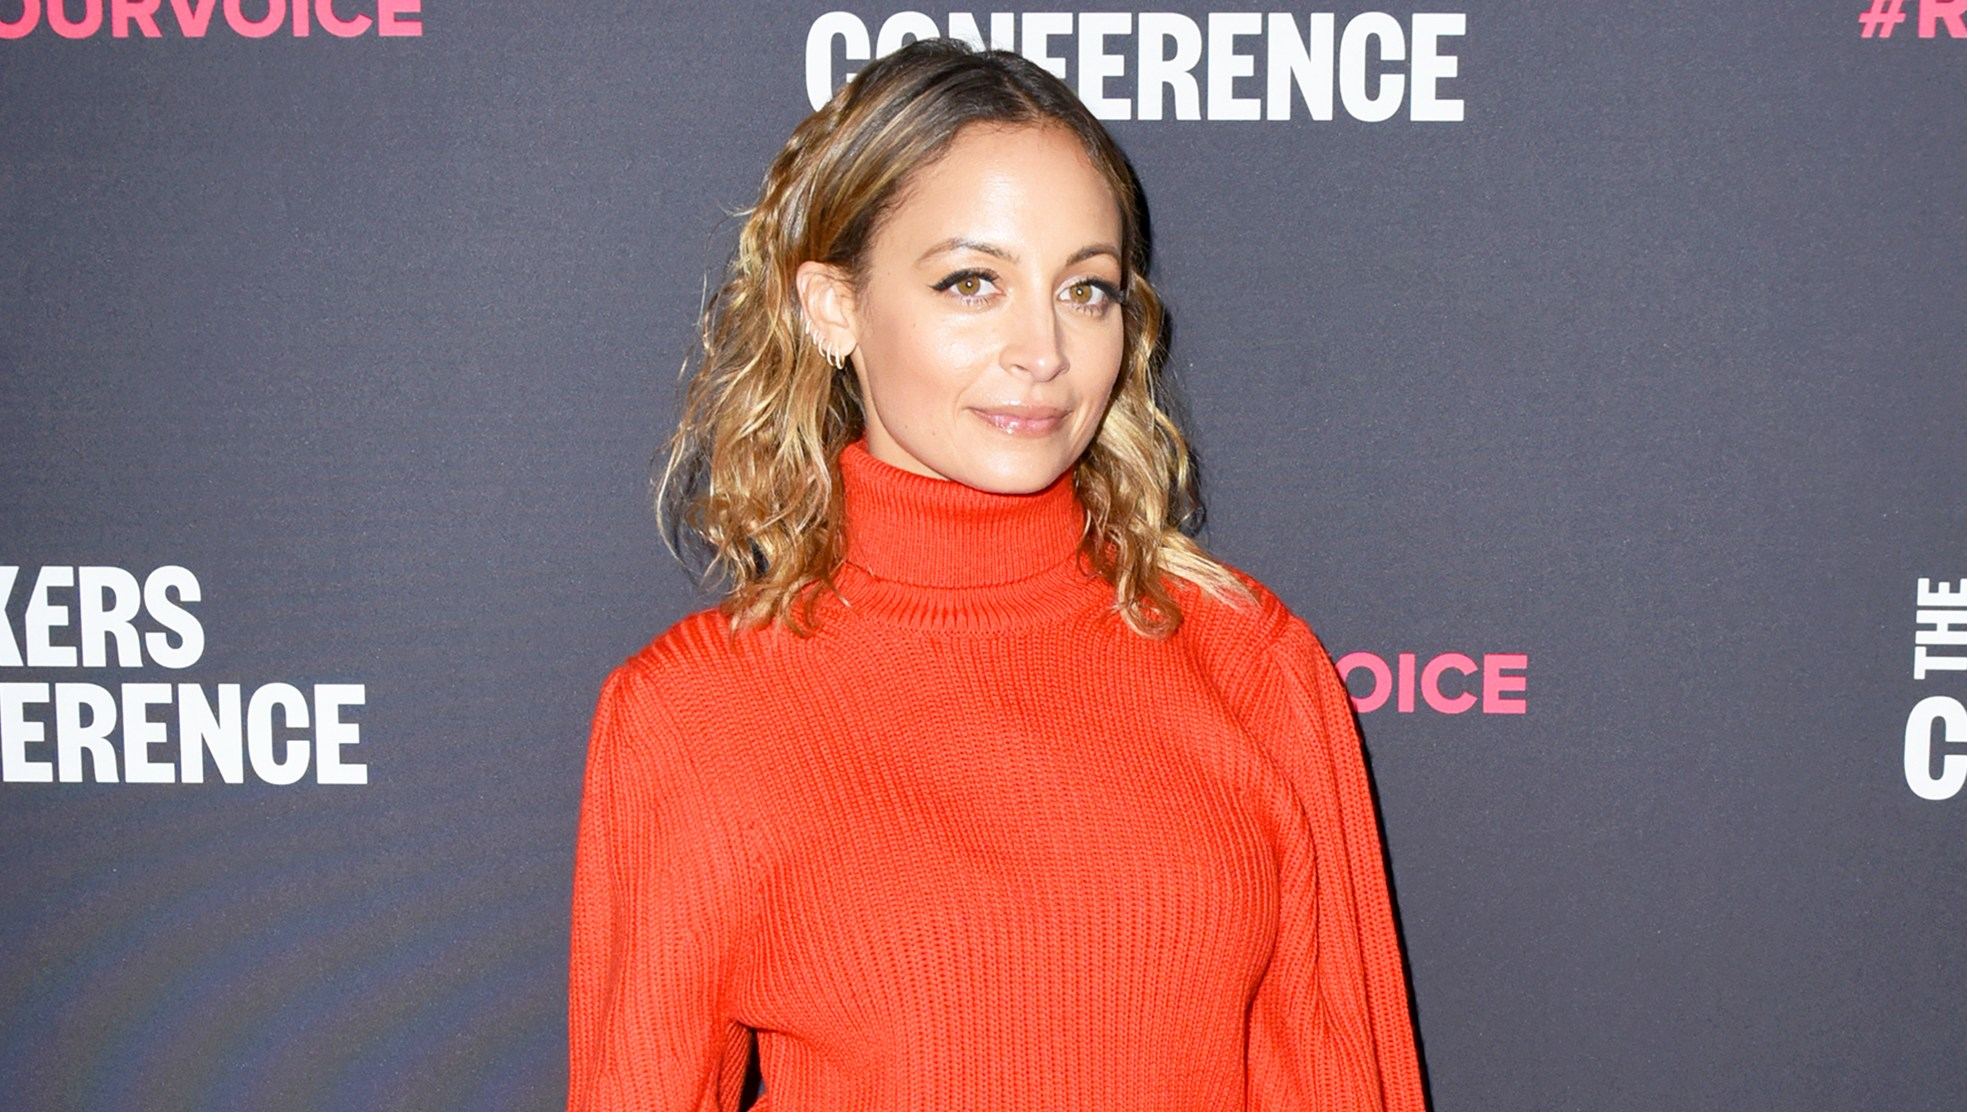 Nicole Richie attends The 2018 MAKERS Conference at NeueHouse Hollywood in Los Angeles, California.